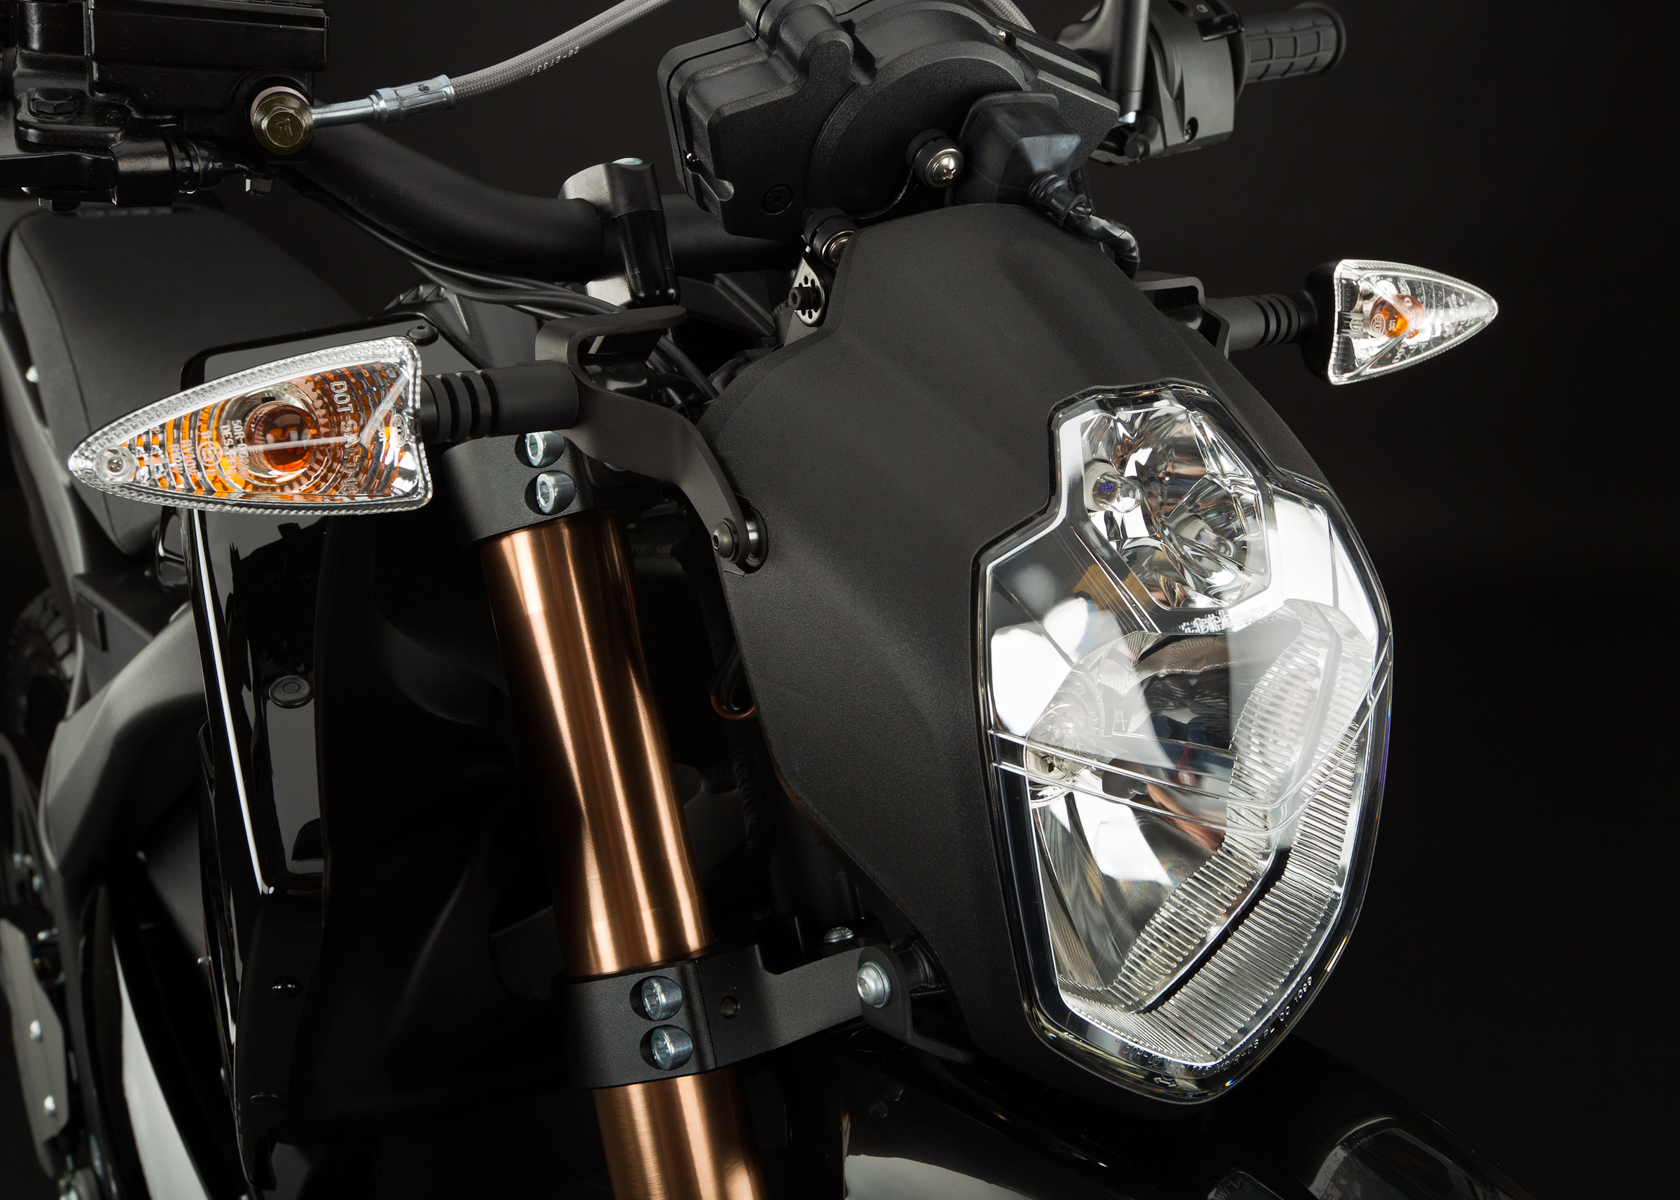 '.2012 Zero DS Electric Motorcycle: Headlight.'